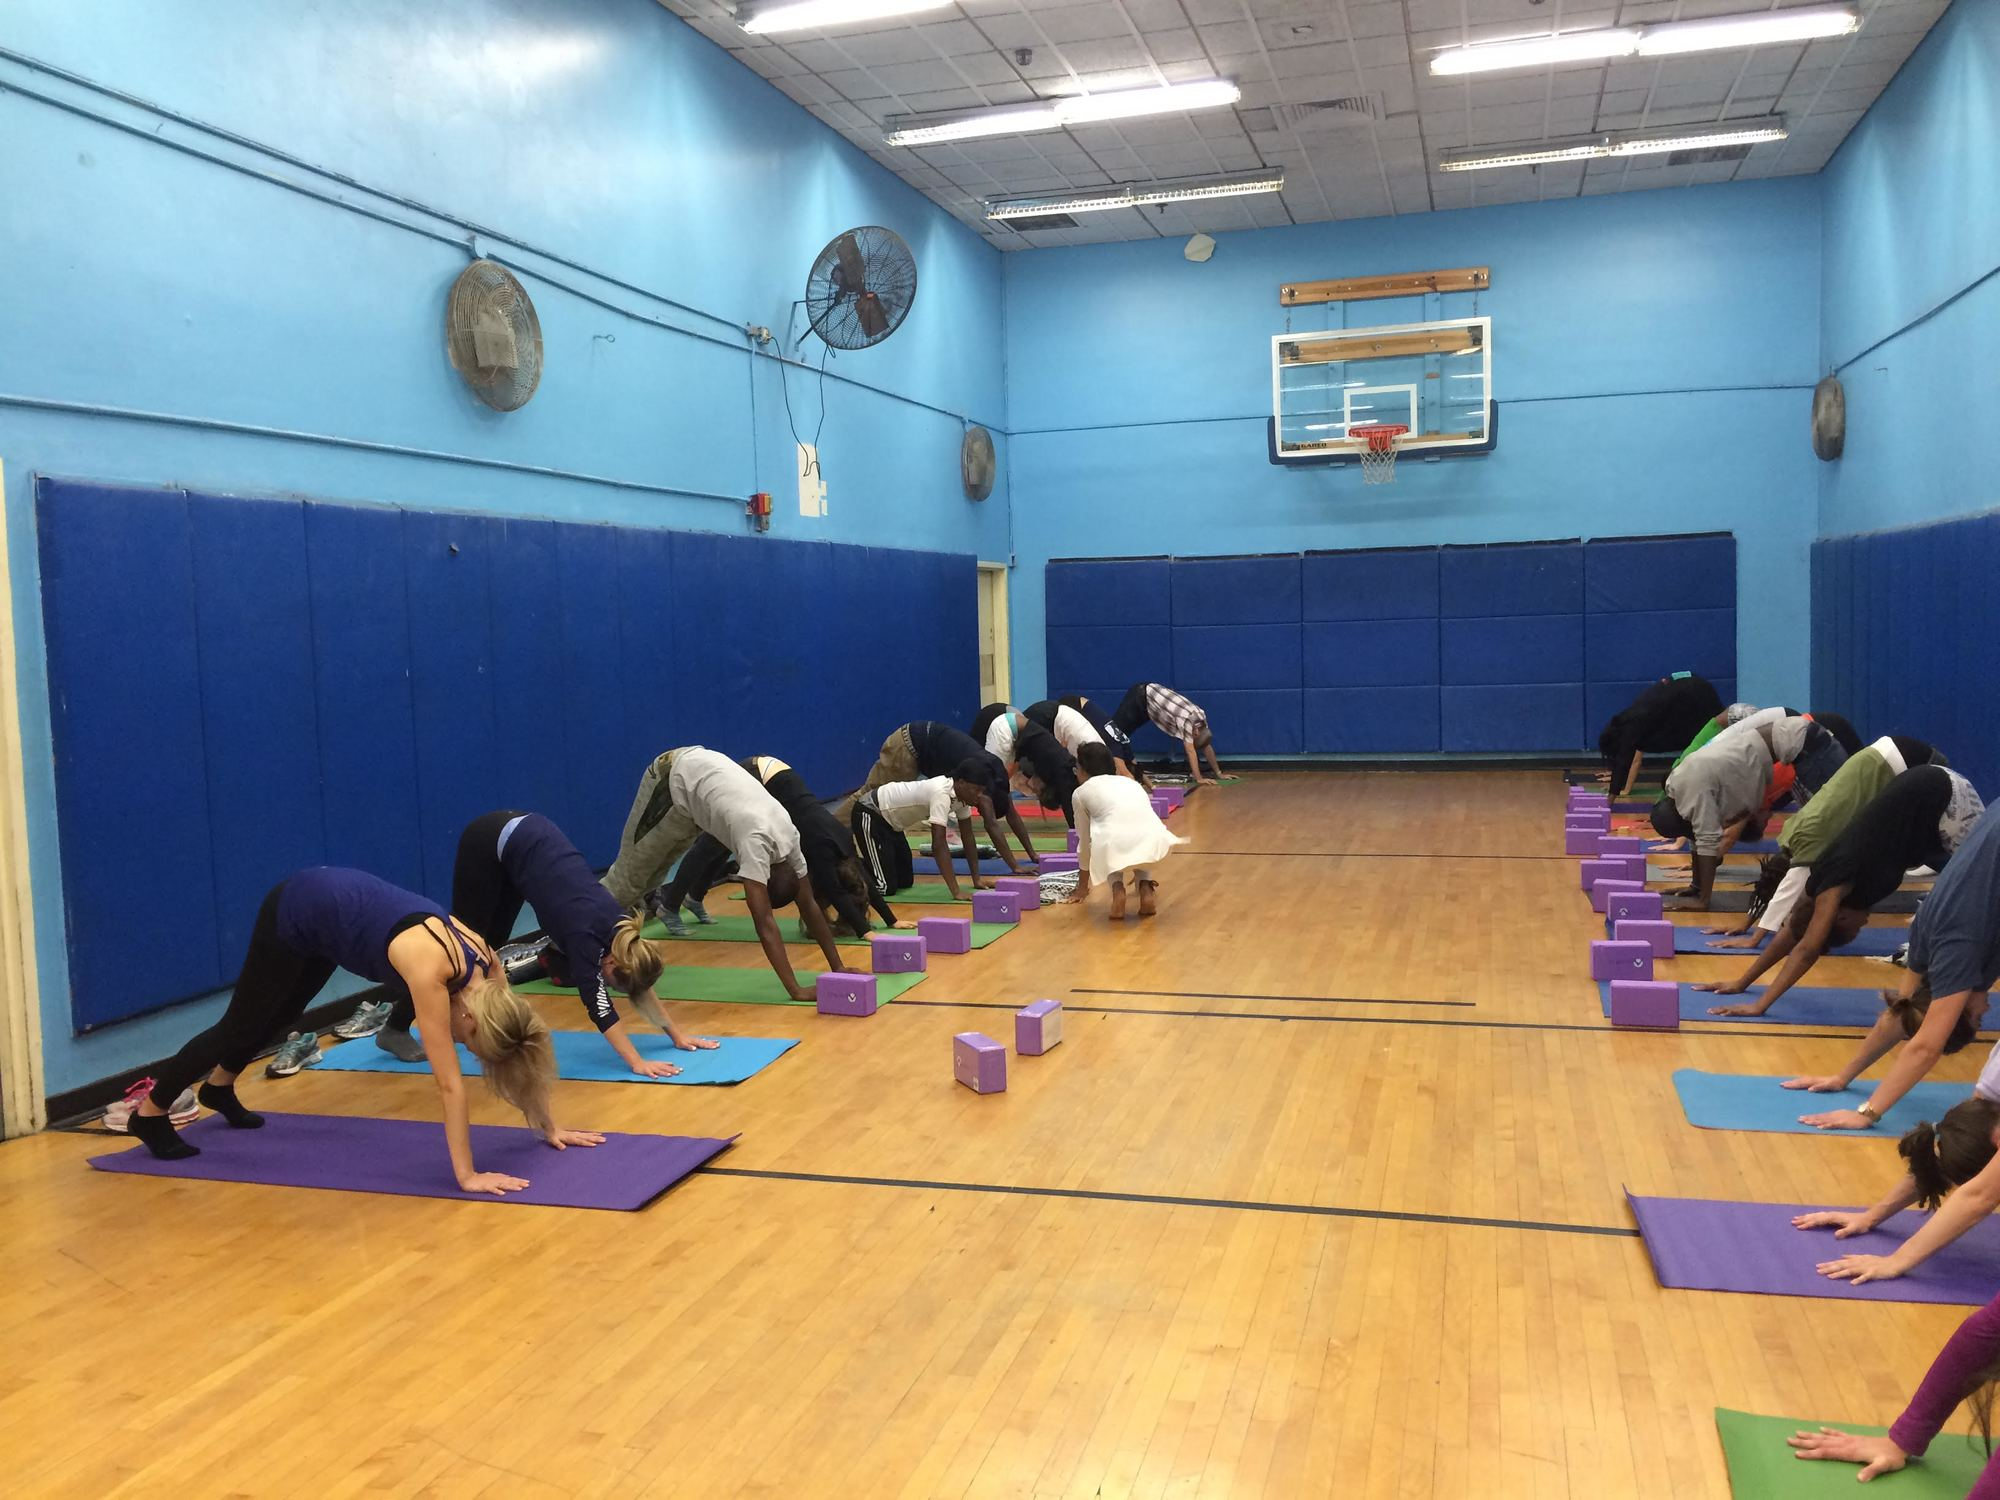 Building strength through yoga - New York Junior League NYJL